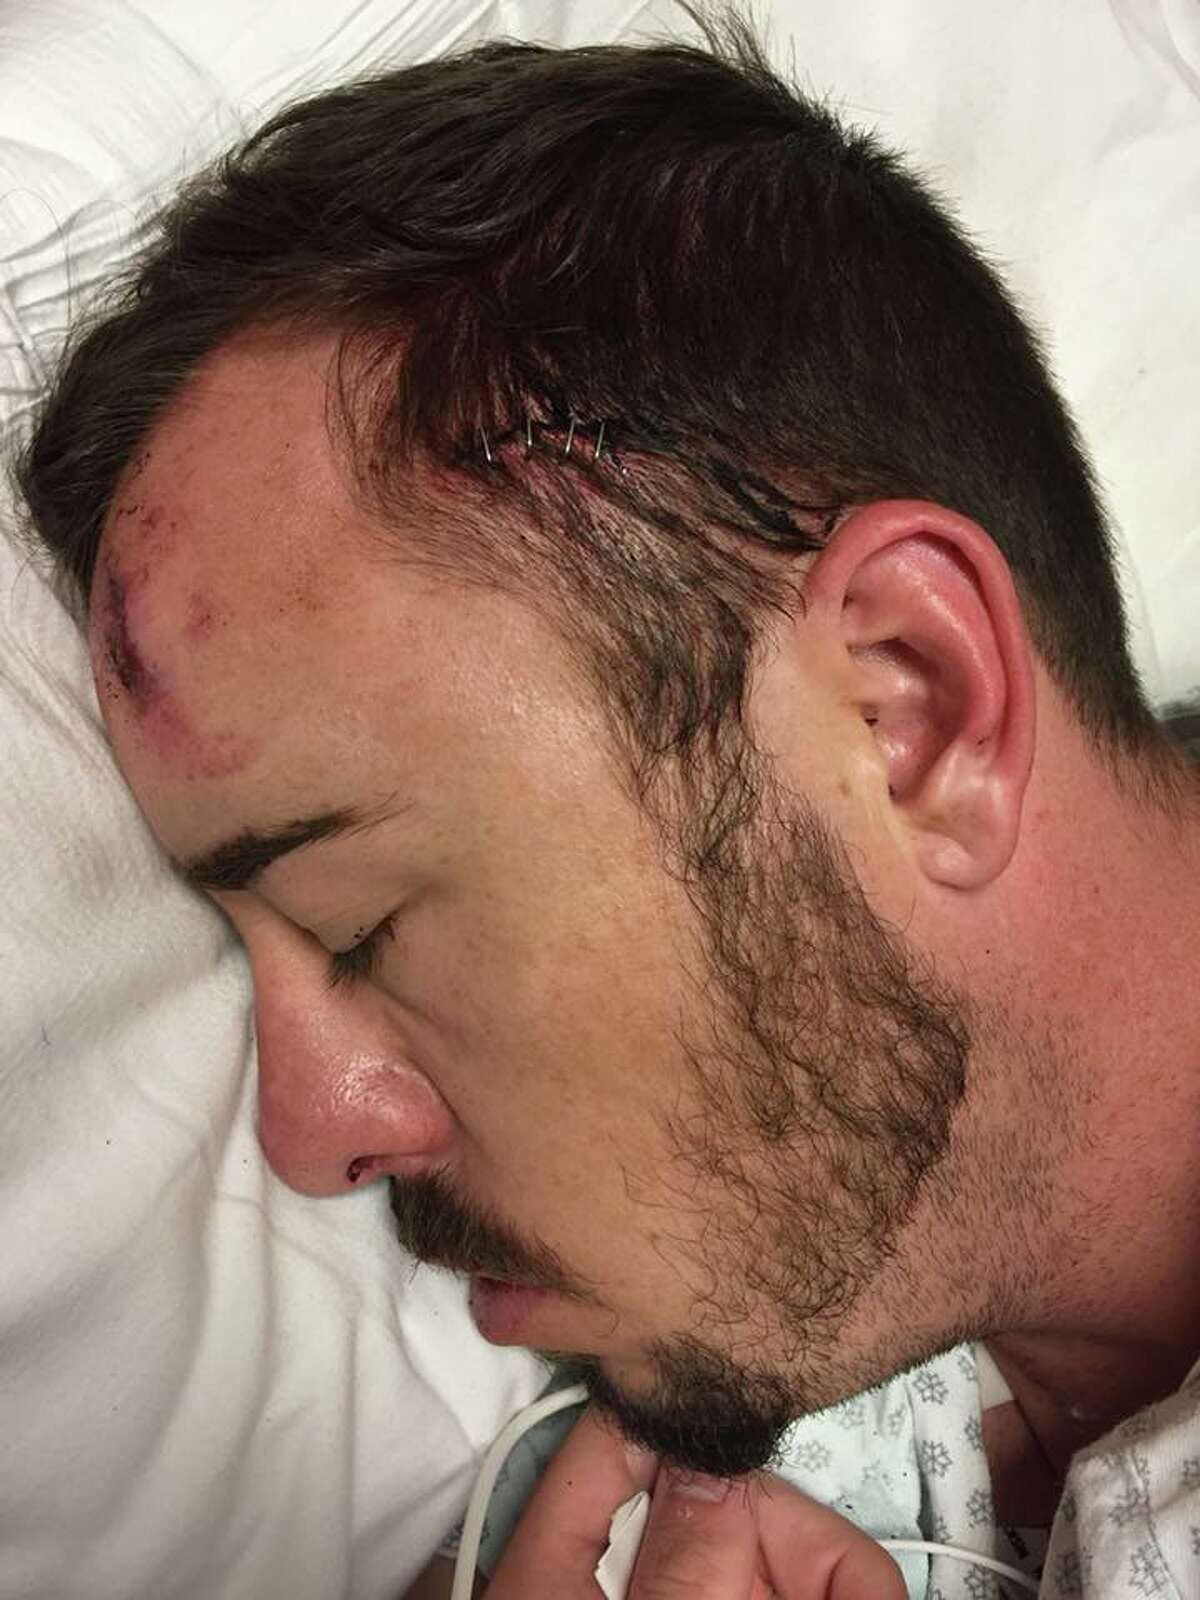 Christopher Bradford said three men attacked him as he was leaving a gay bar in Montrose early Wednesday.